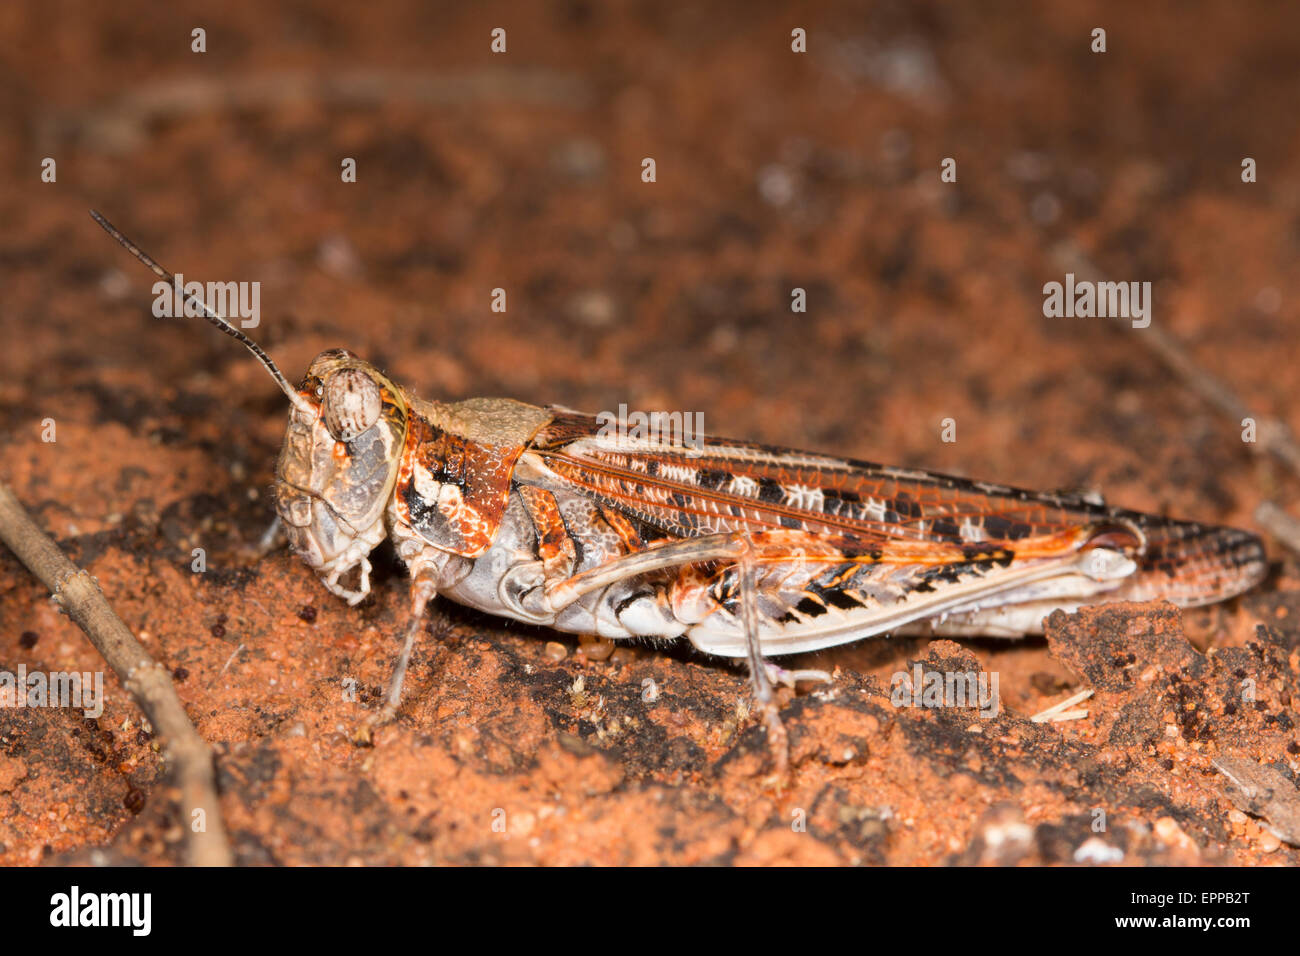 brightly coloured, but well camouflaged Grasshopper on the red sand of an Australian desert - Stock Image